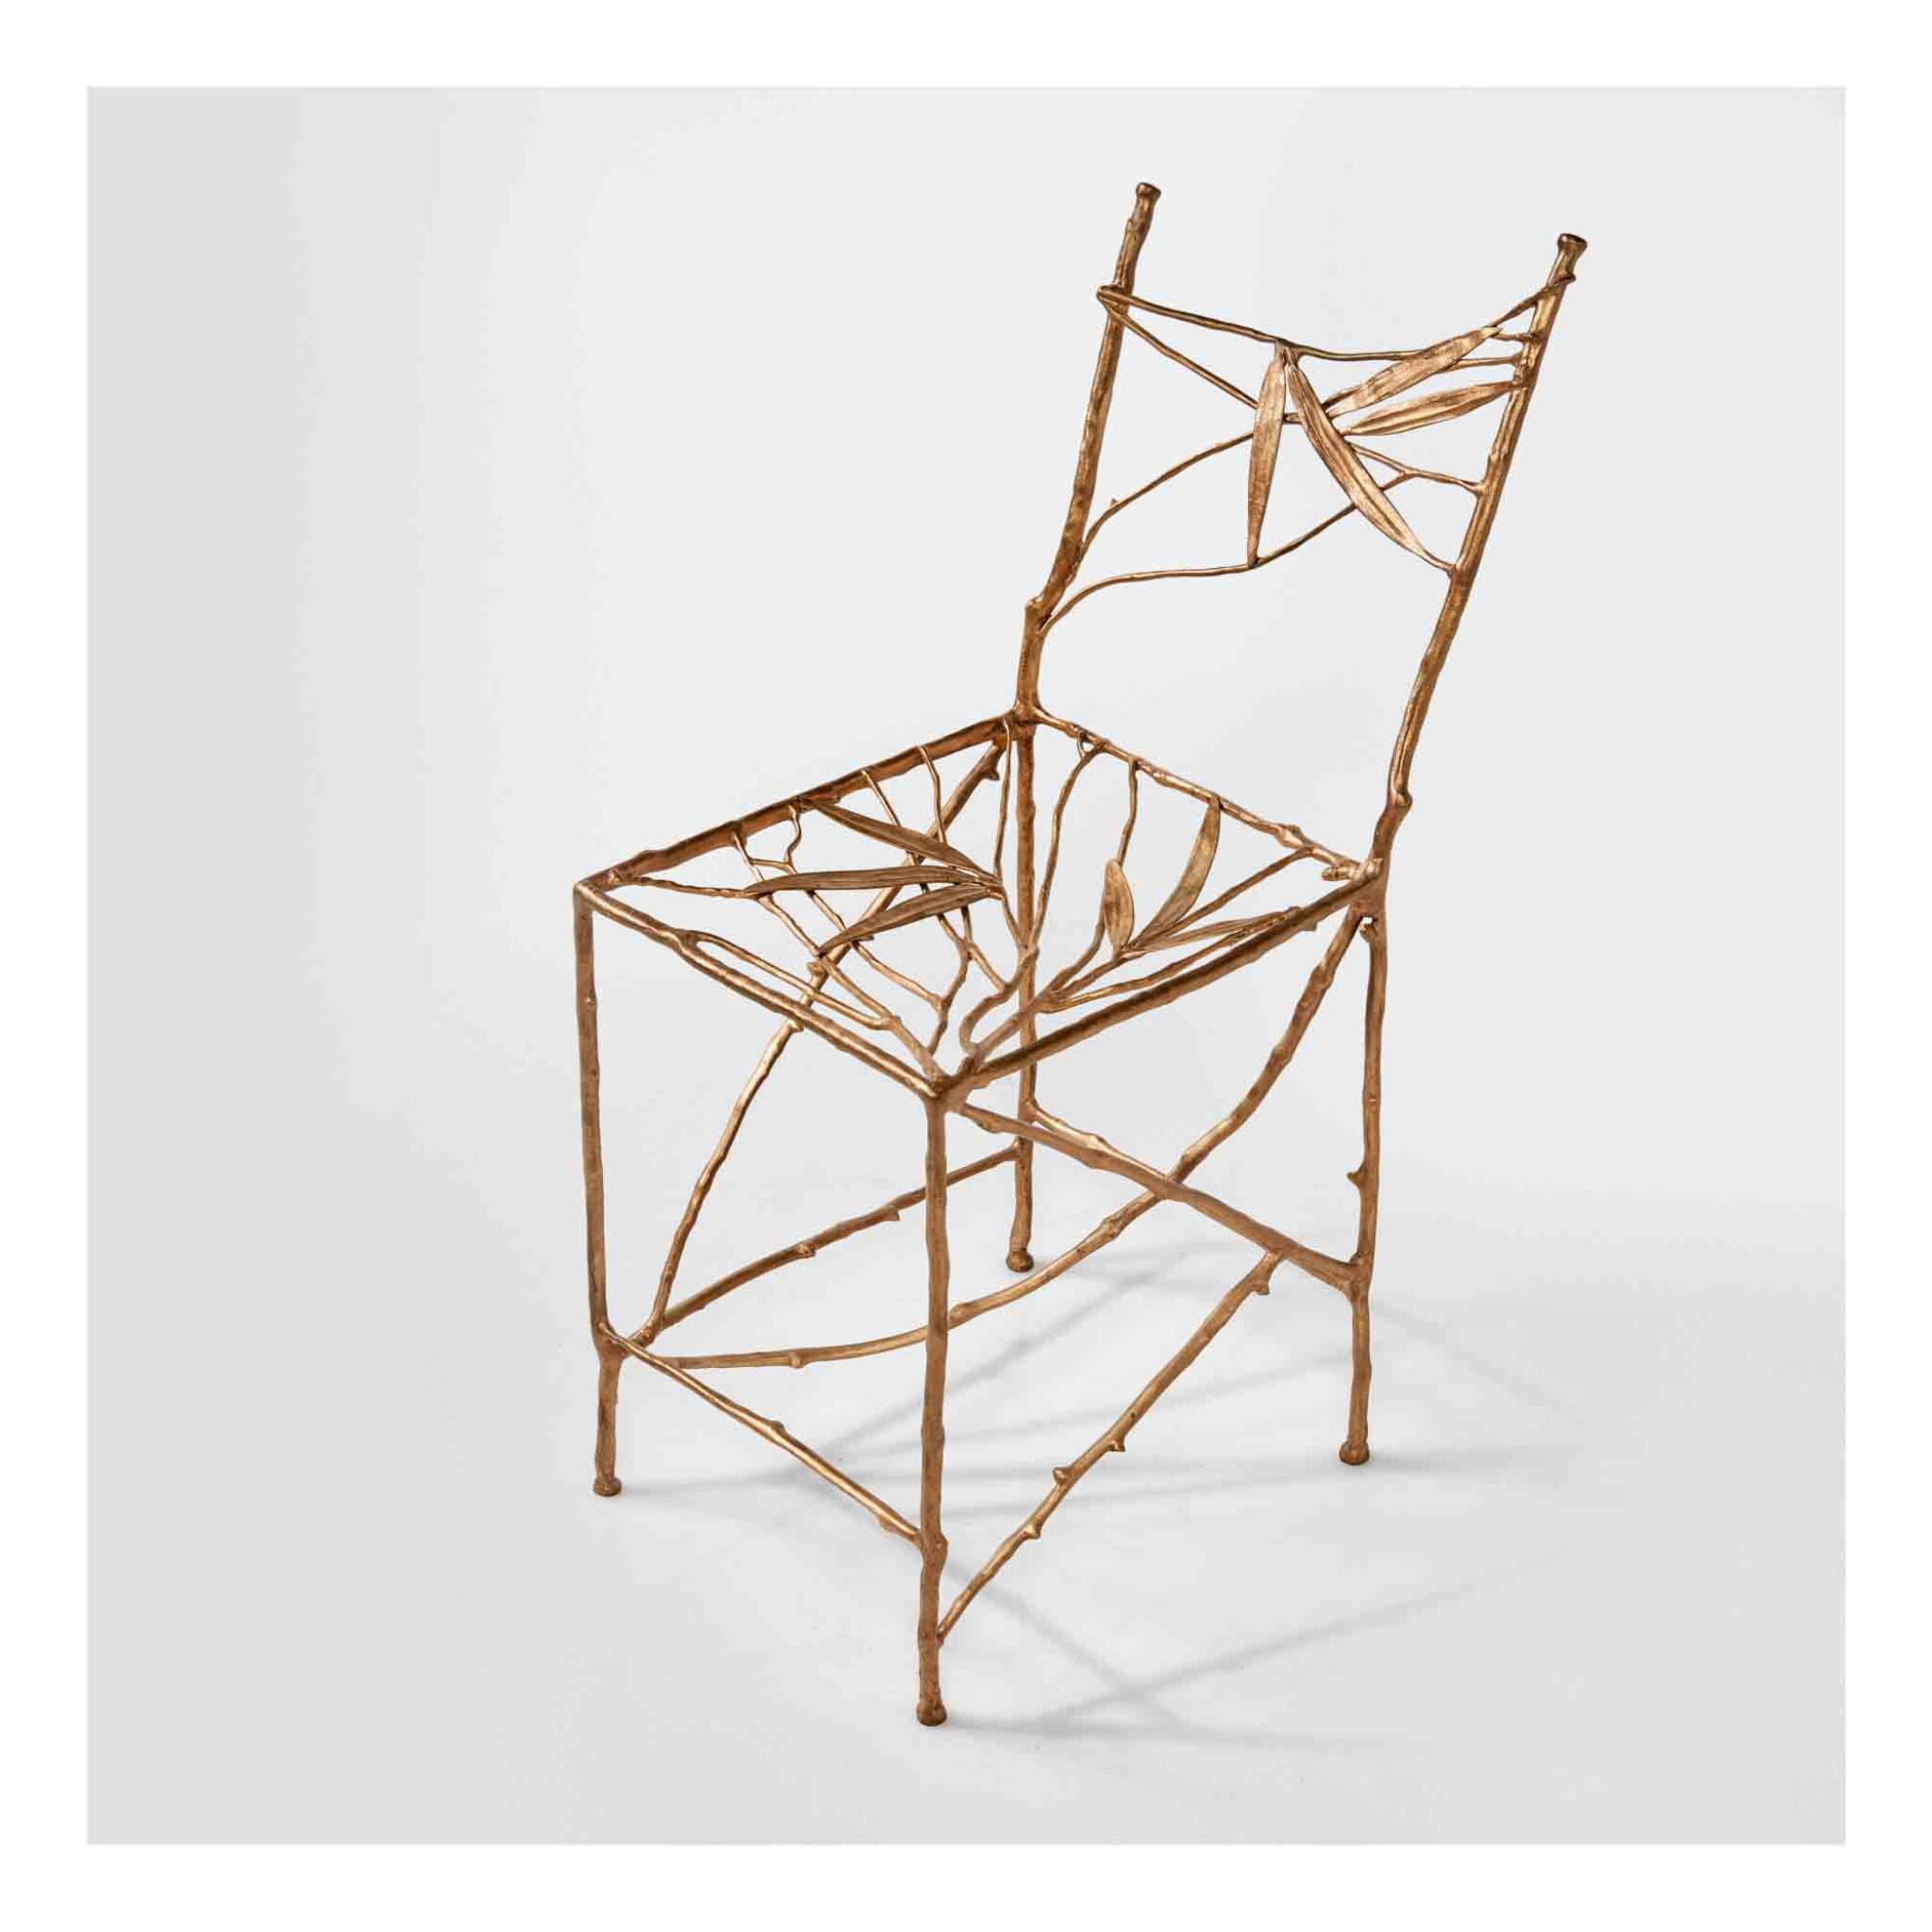 """View 1 of Lot 445. """"Bambou"""" Chair."""